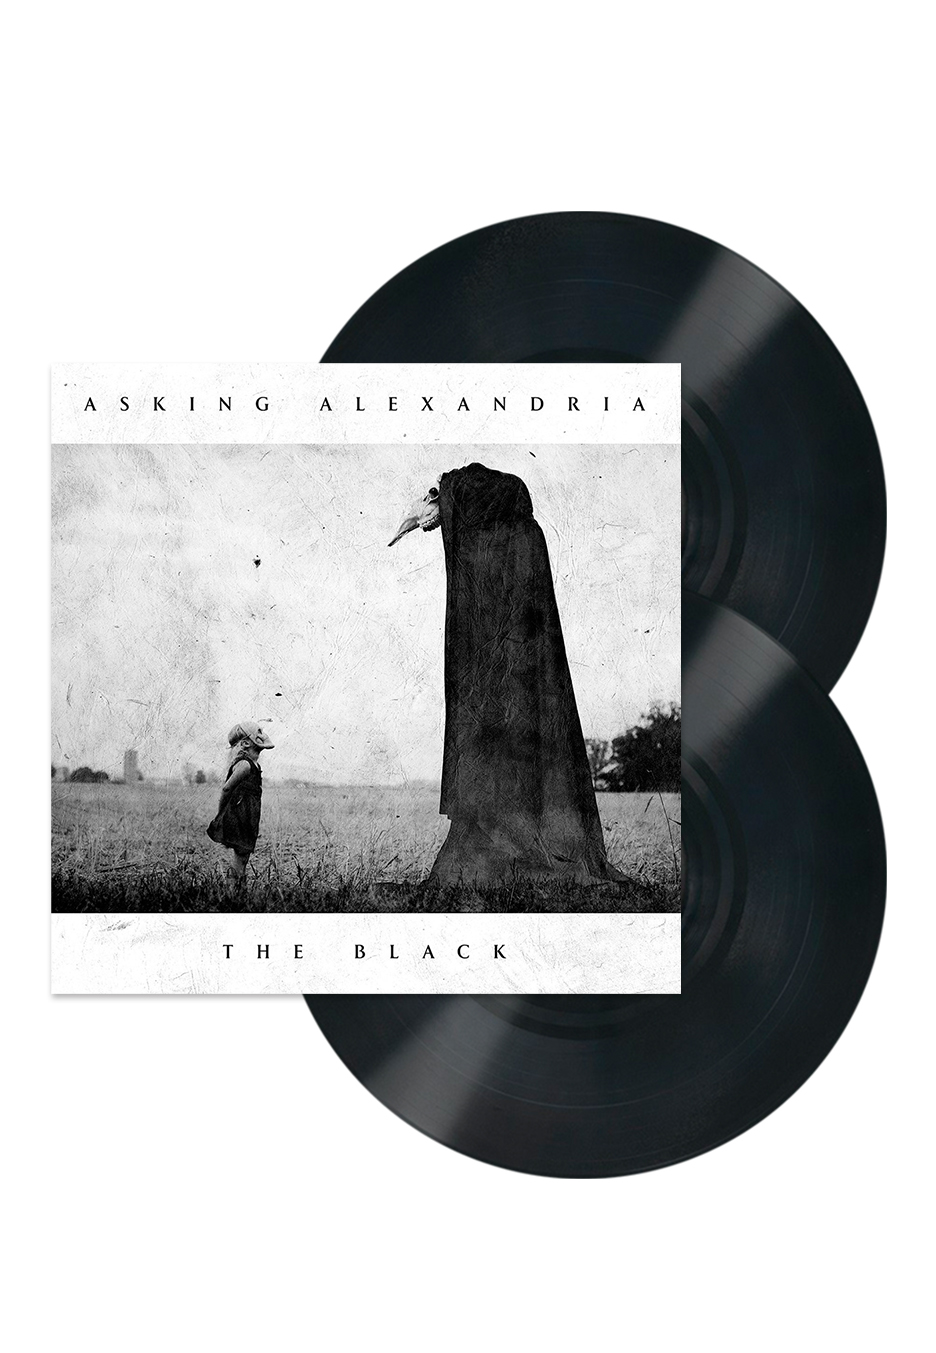 ff4f32cba03 Asking Alexandria - The Black - 2 LP - Official Metalcore Merchandise Shop  - Impericon.com UK